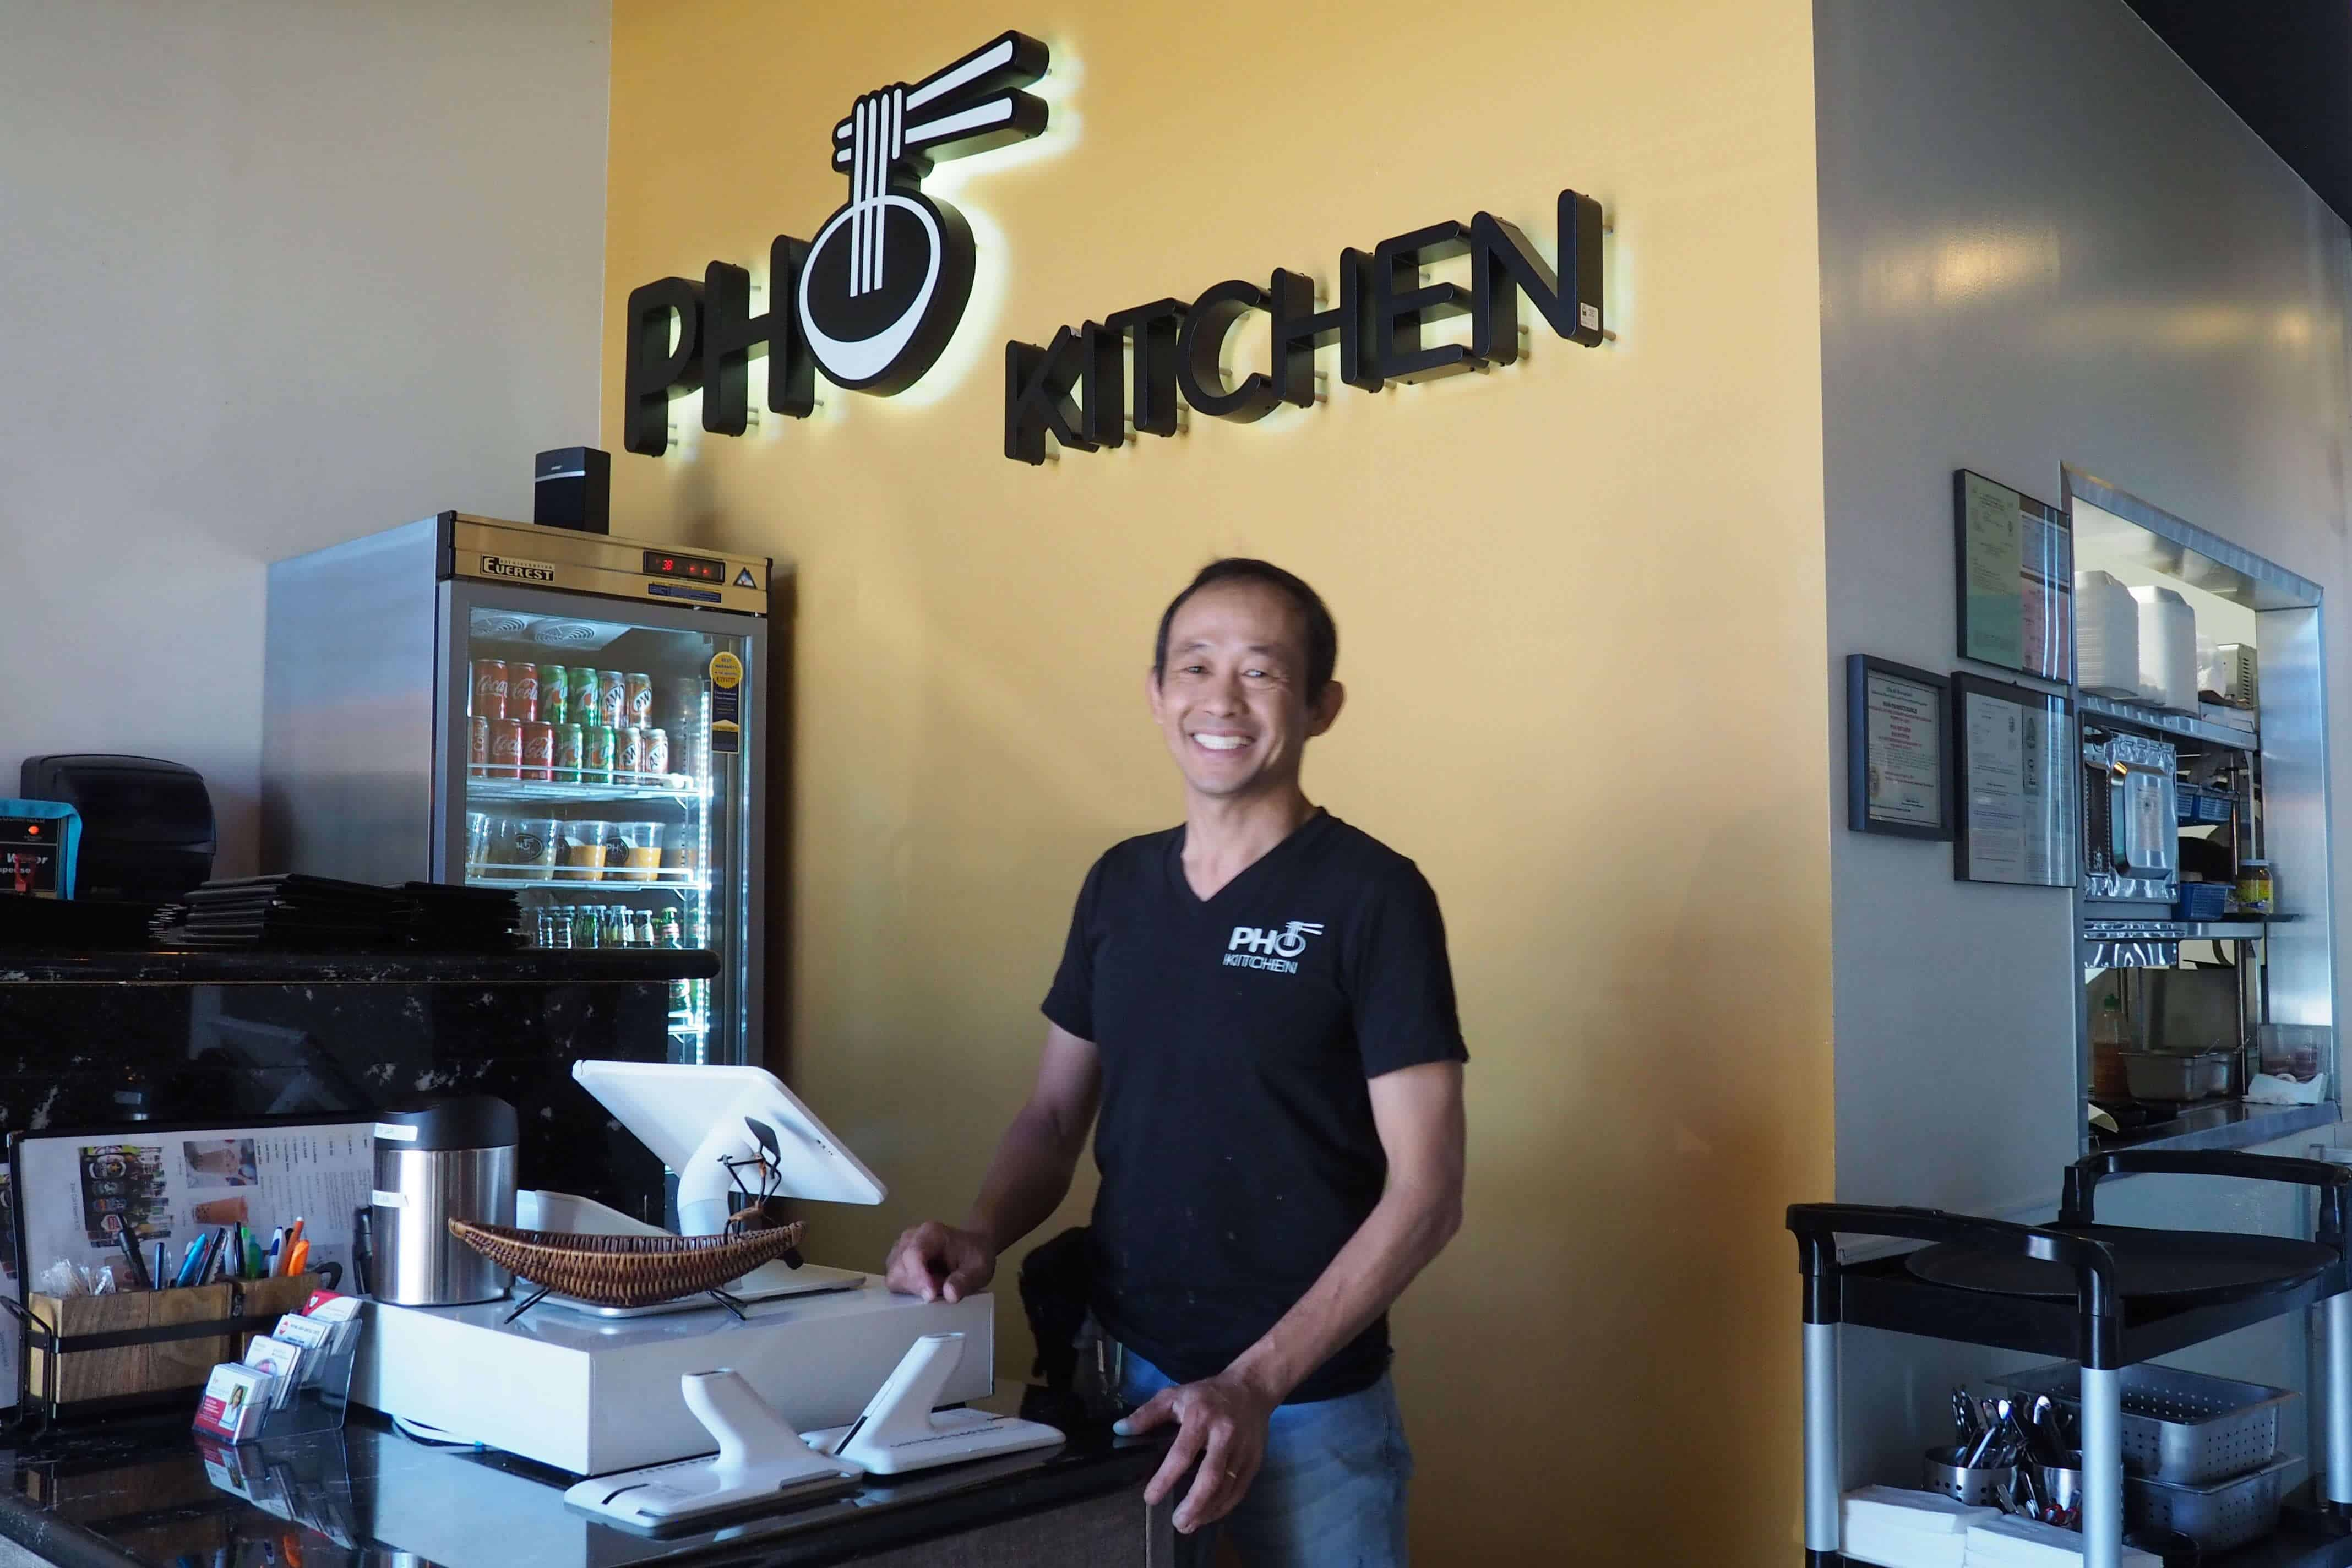 Pho Kitchen Oceanside Staff